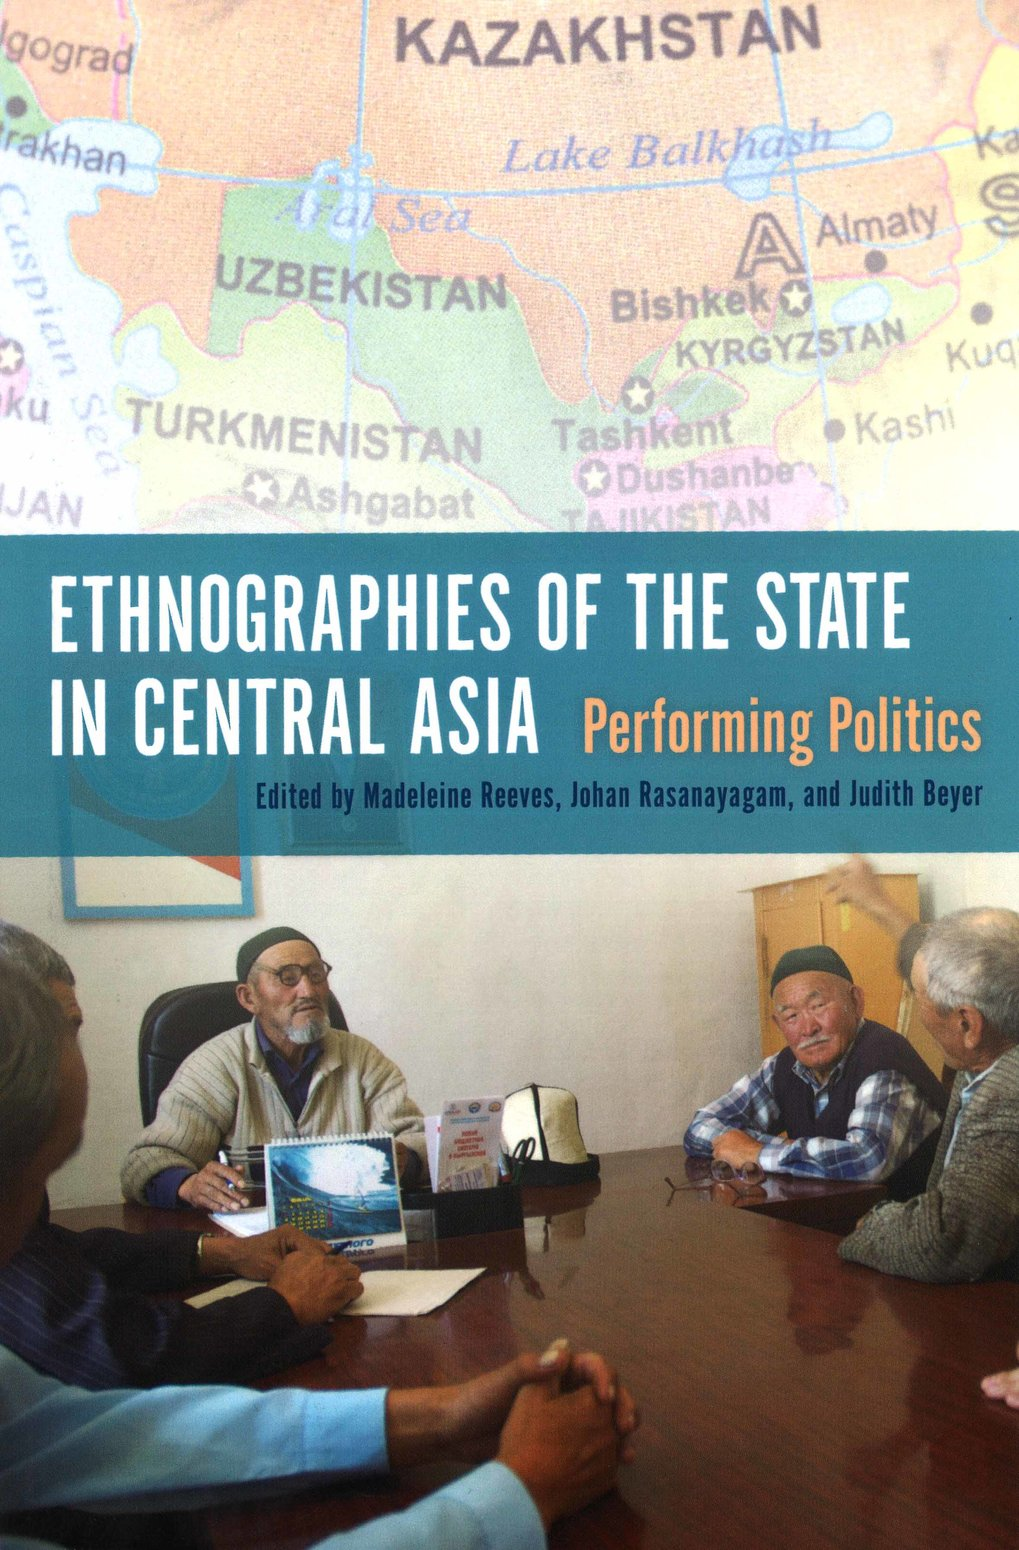 Ethnographies of the State in Central Asia